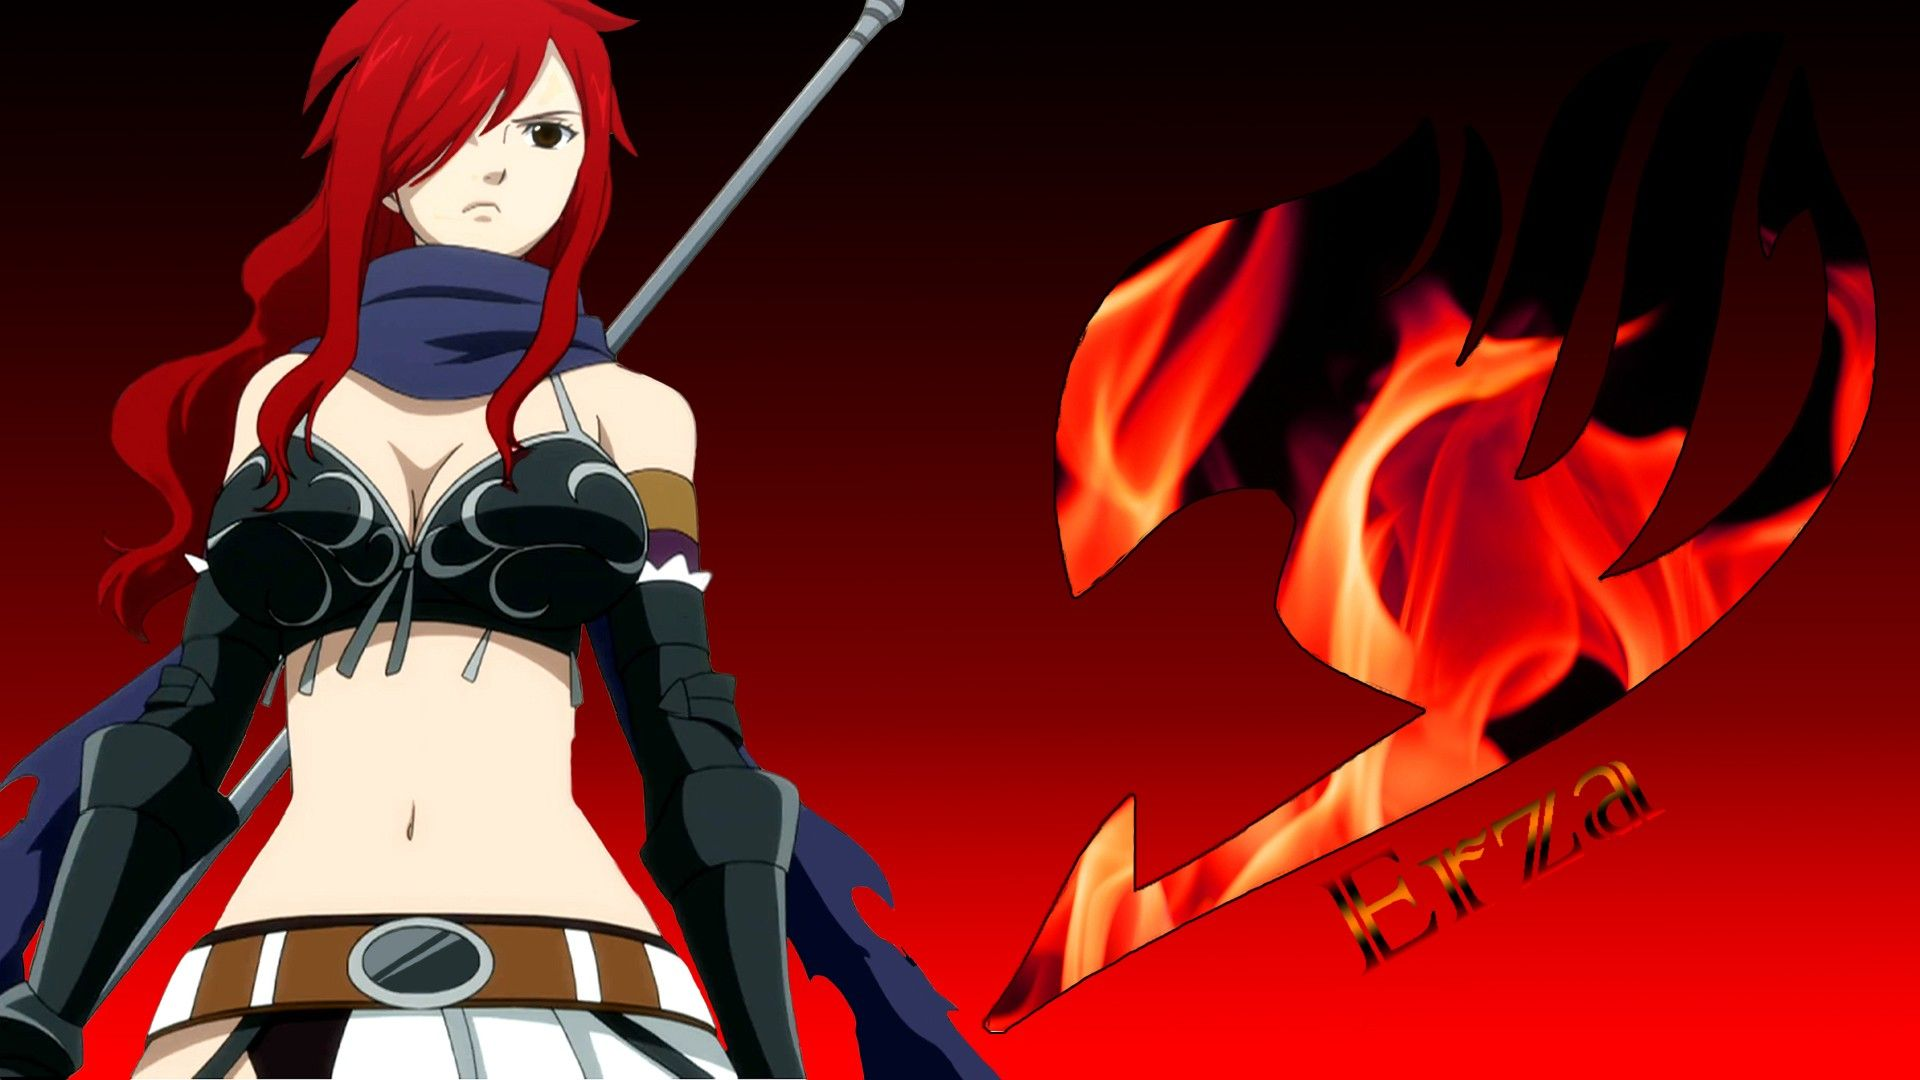 Erza Fairy Tail Background Hd Wallpaper Fairy Tail Pictures